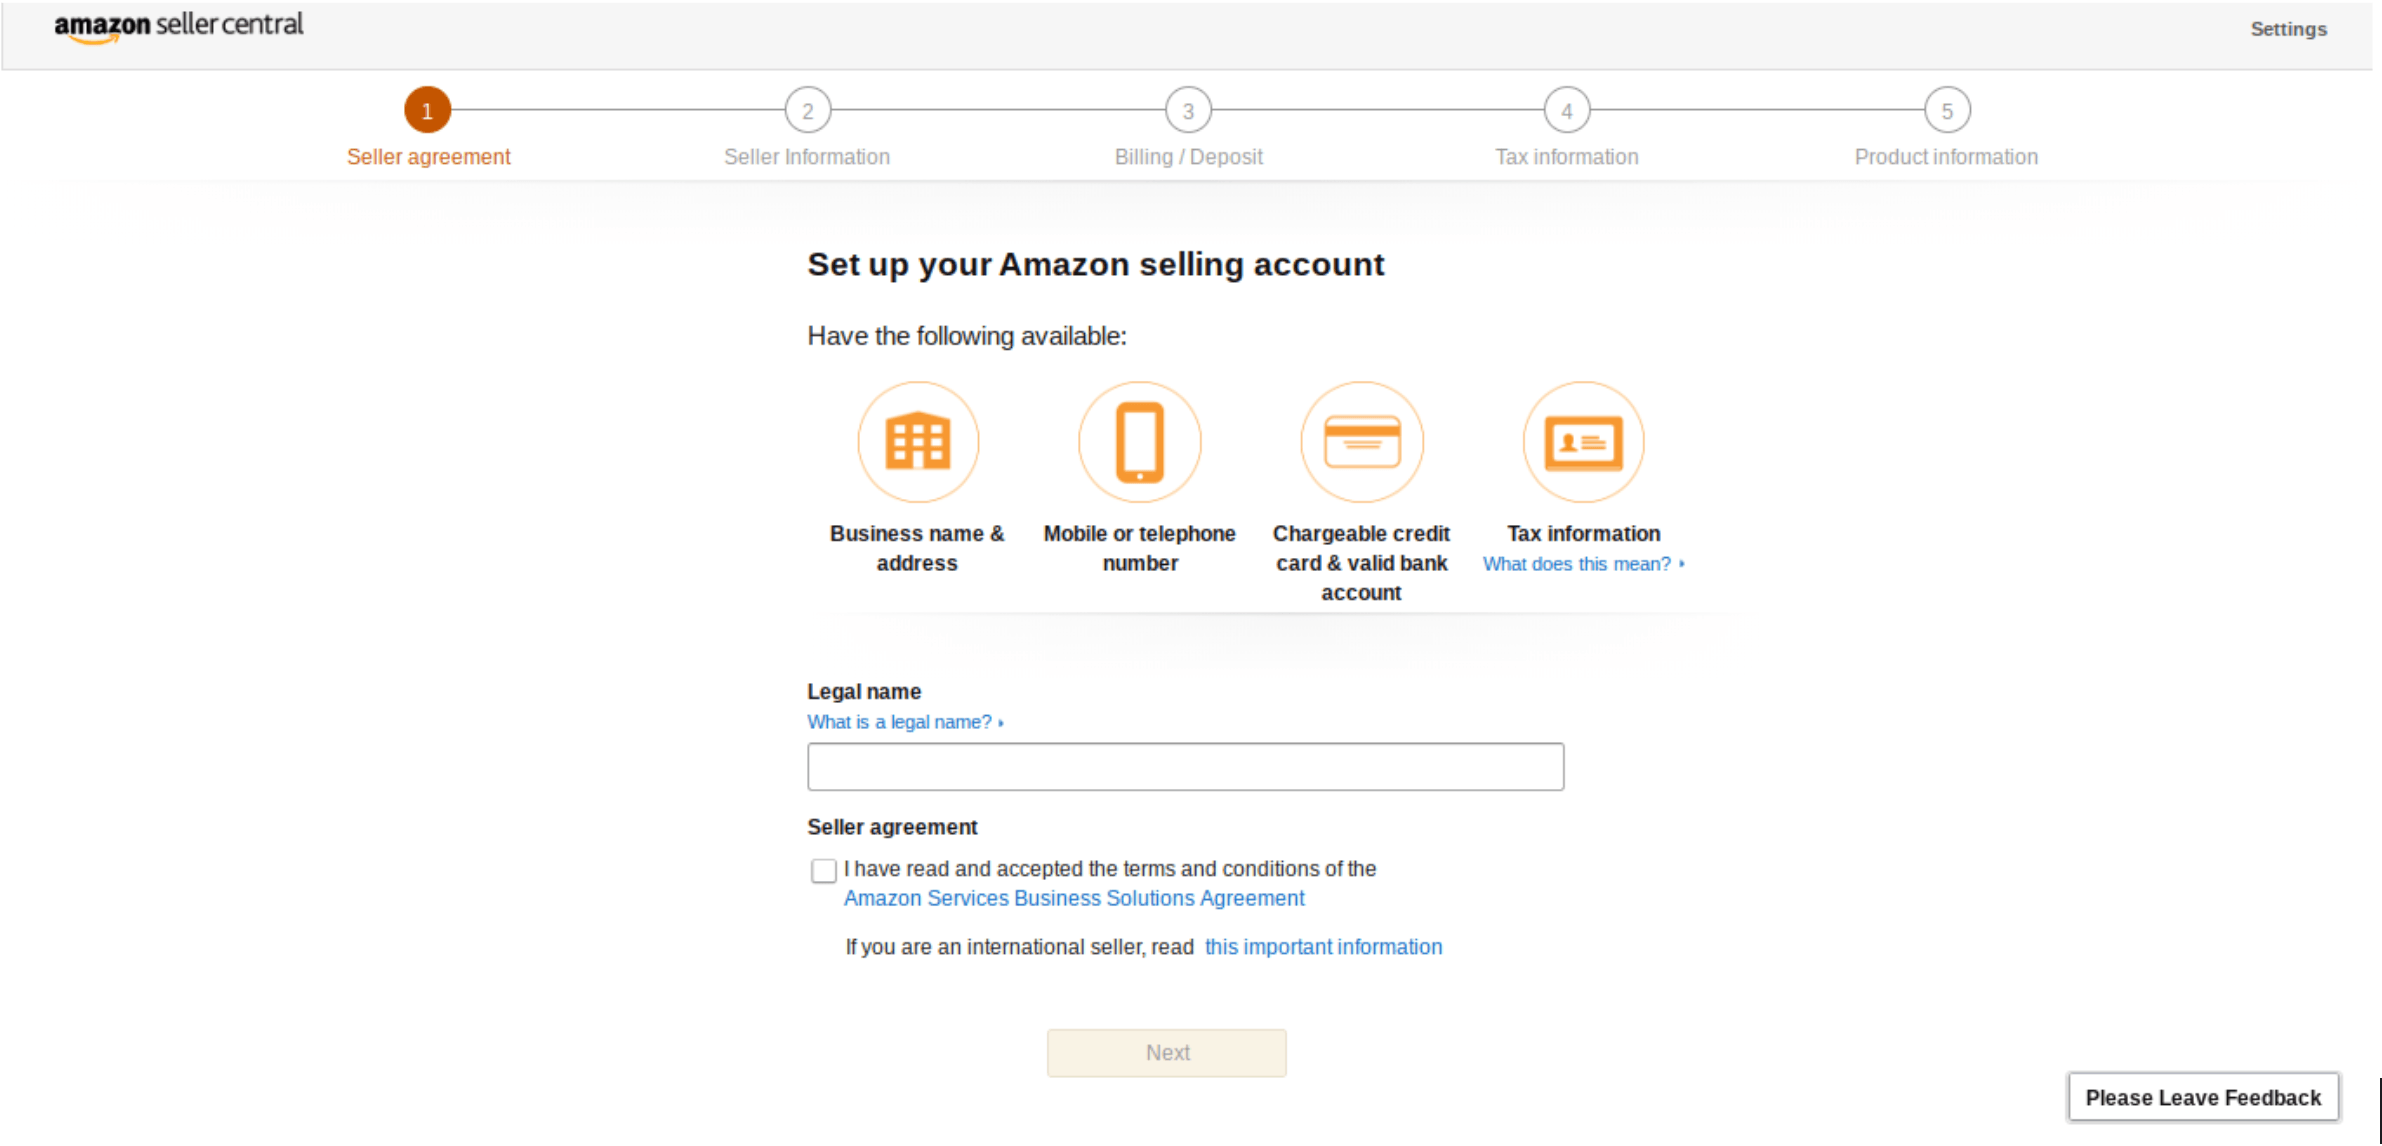 Opening new amazon seller account - seller agreement screen